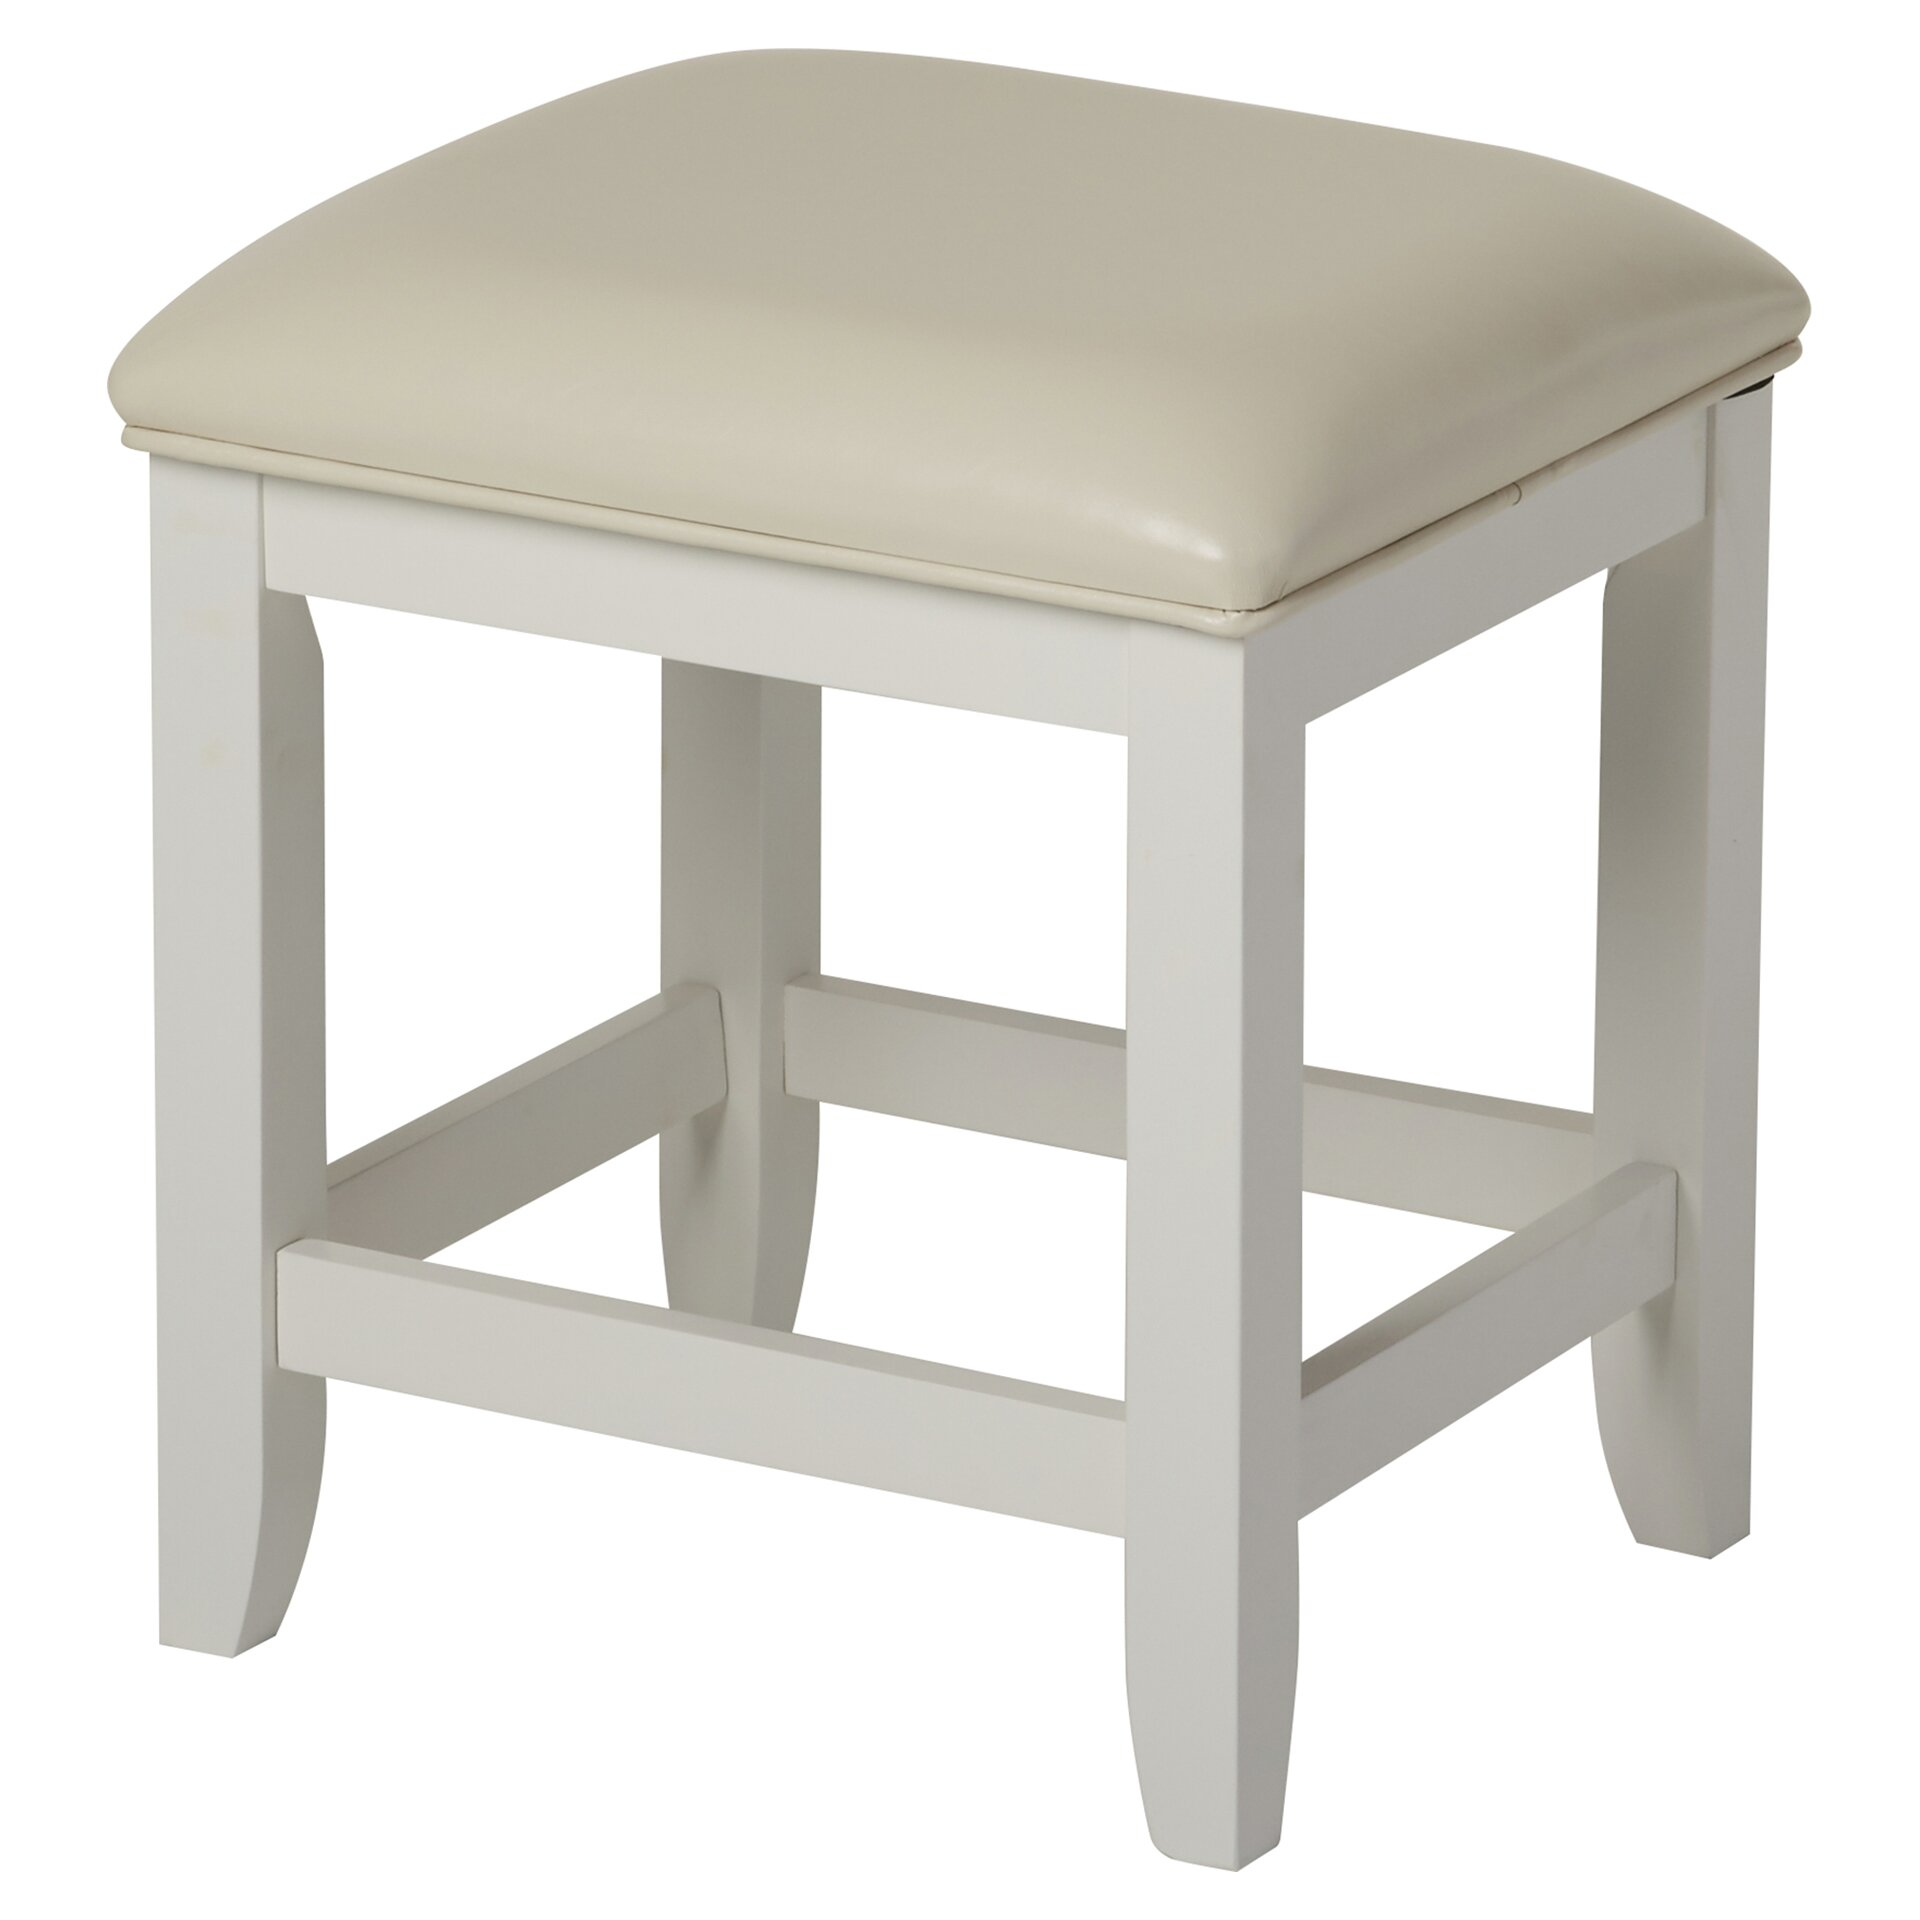 Wayfair Furniture Patio